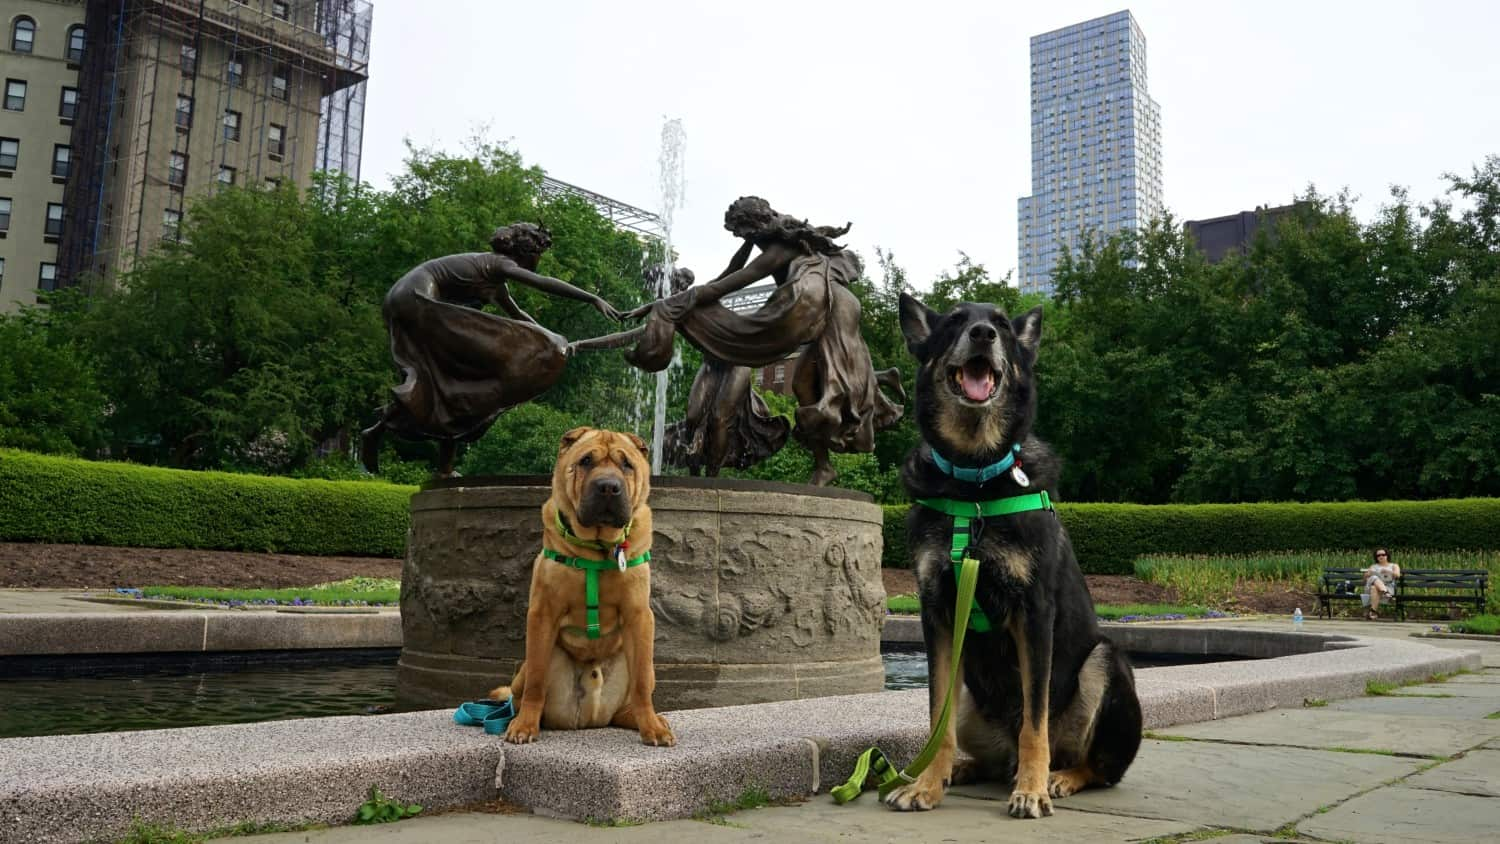 New York's Top Pet Friendly Attraction: Central Park   GoPetFriendly.com